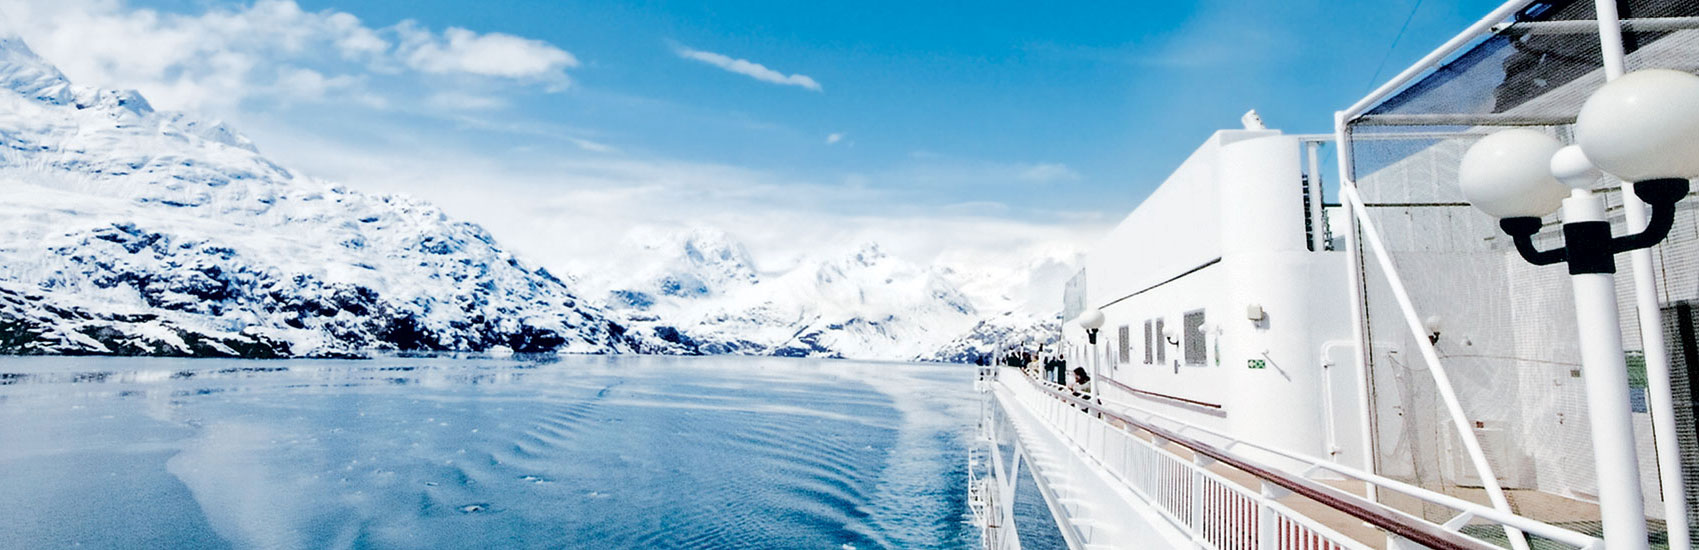 Free at Sea in Alaska with Norwegian Cruise Line 1